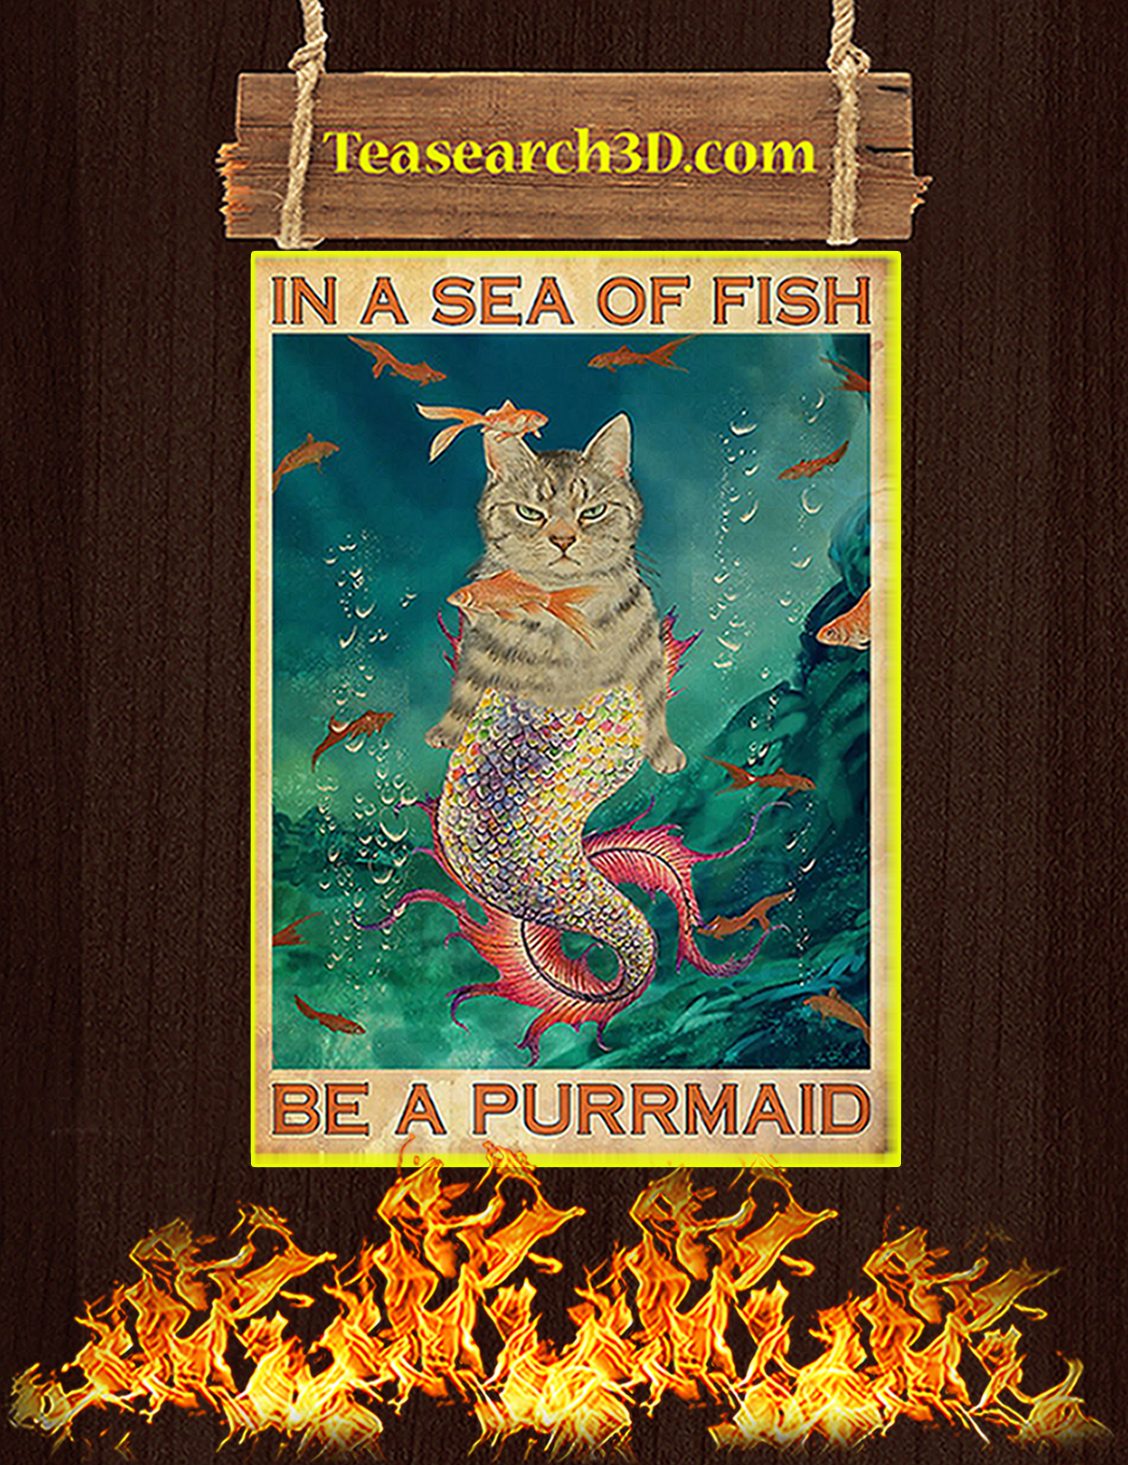 In a sea of fish be a purrmaid poster A3